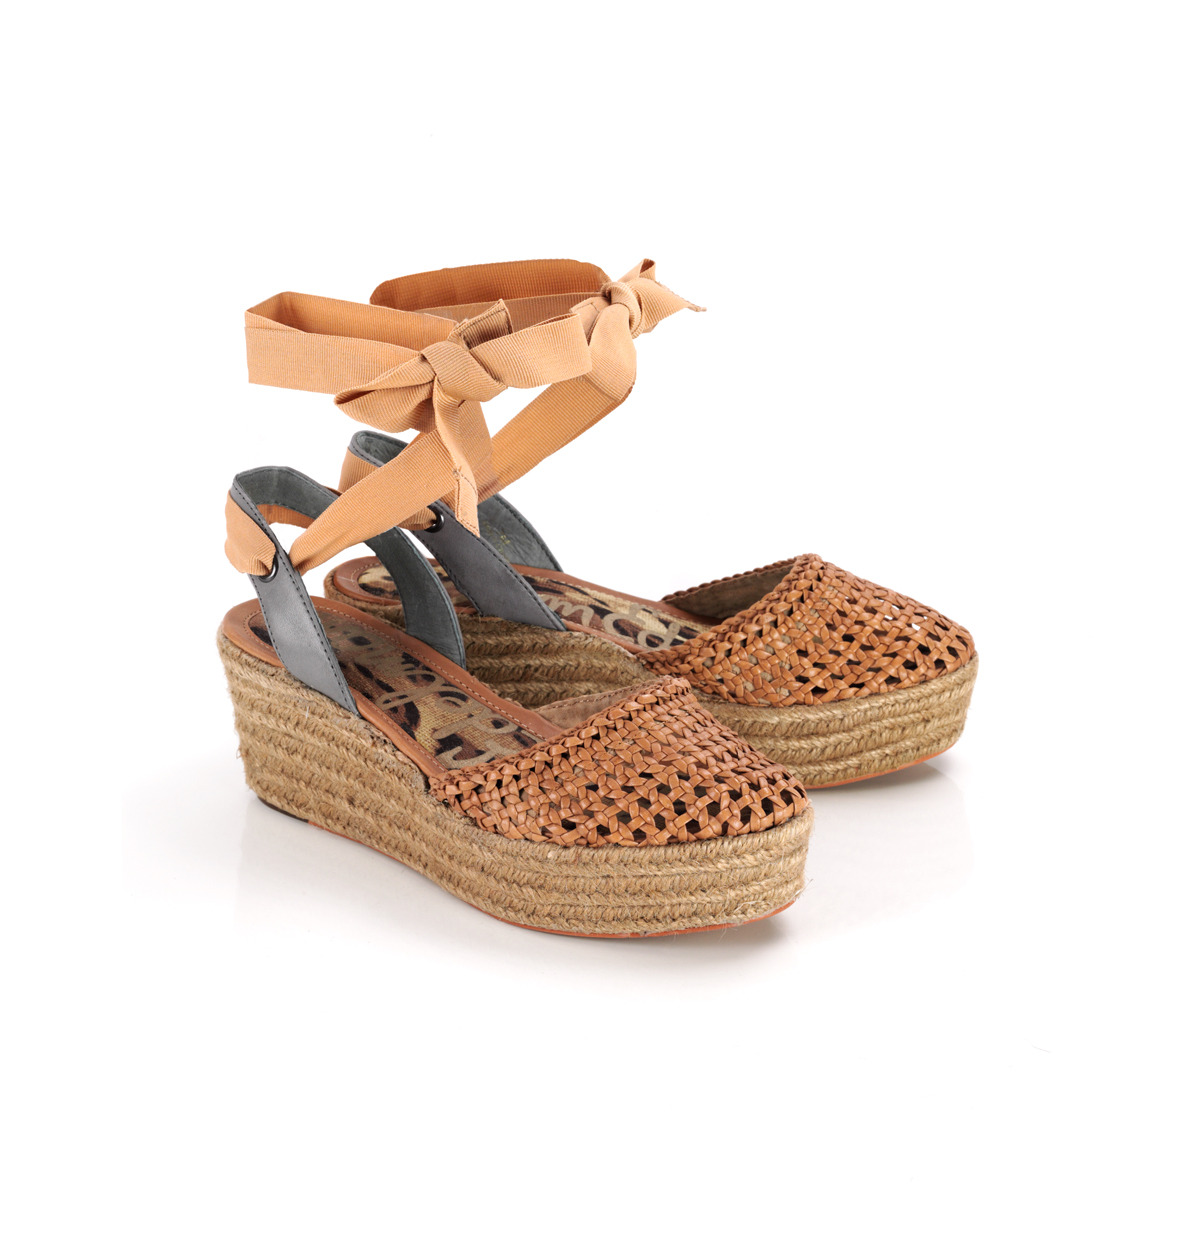 Leona Woven Wedge Sandals - predominant colour: tan; material: fabric; heel height: mid; ankle detail: ankle tie; heel: wedge; style: standard